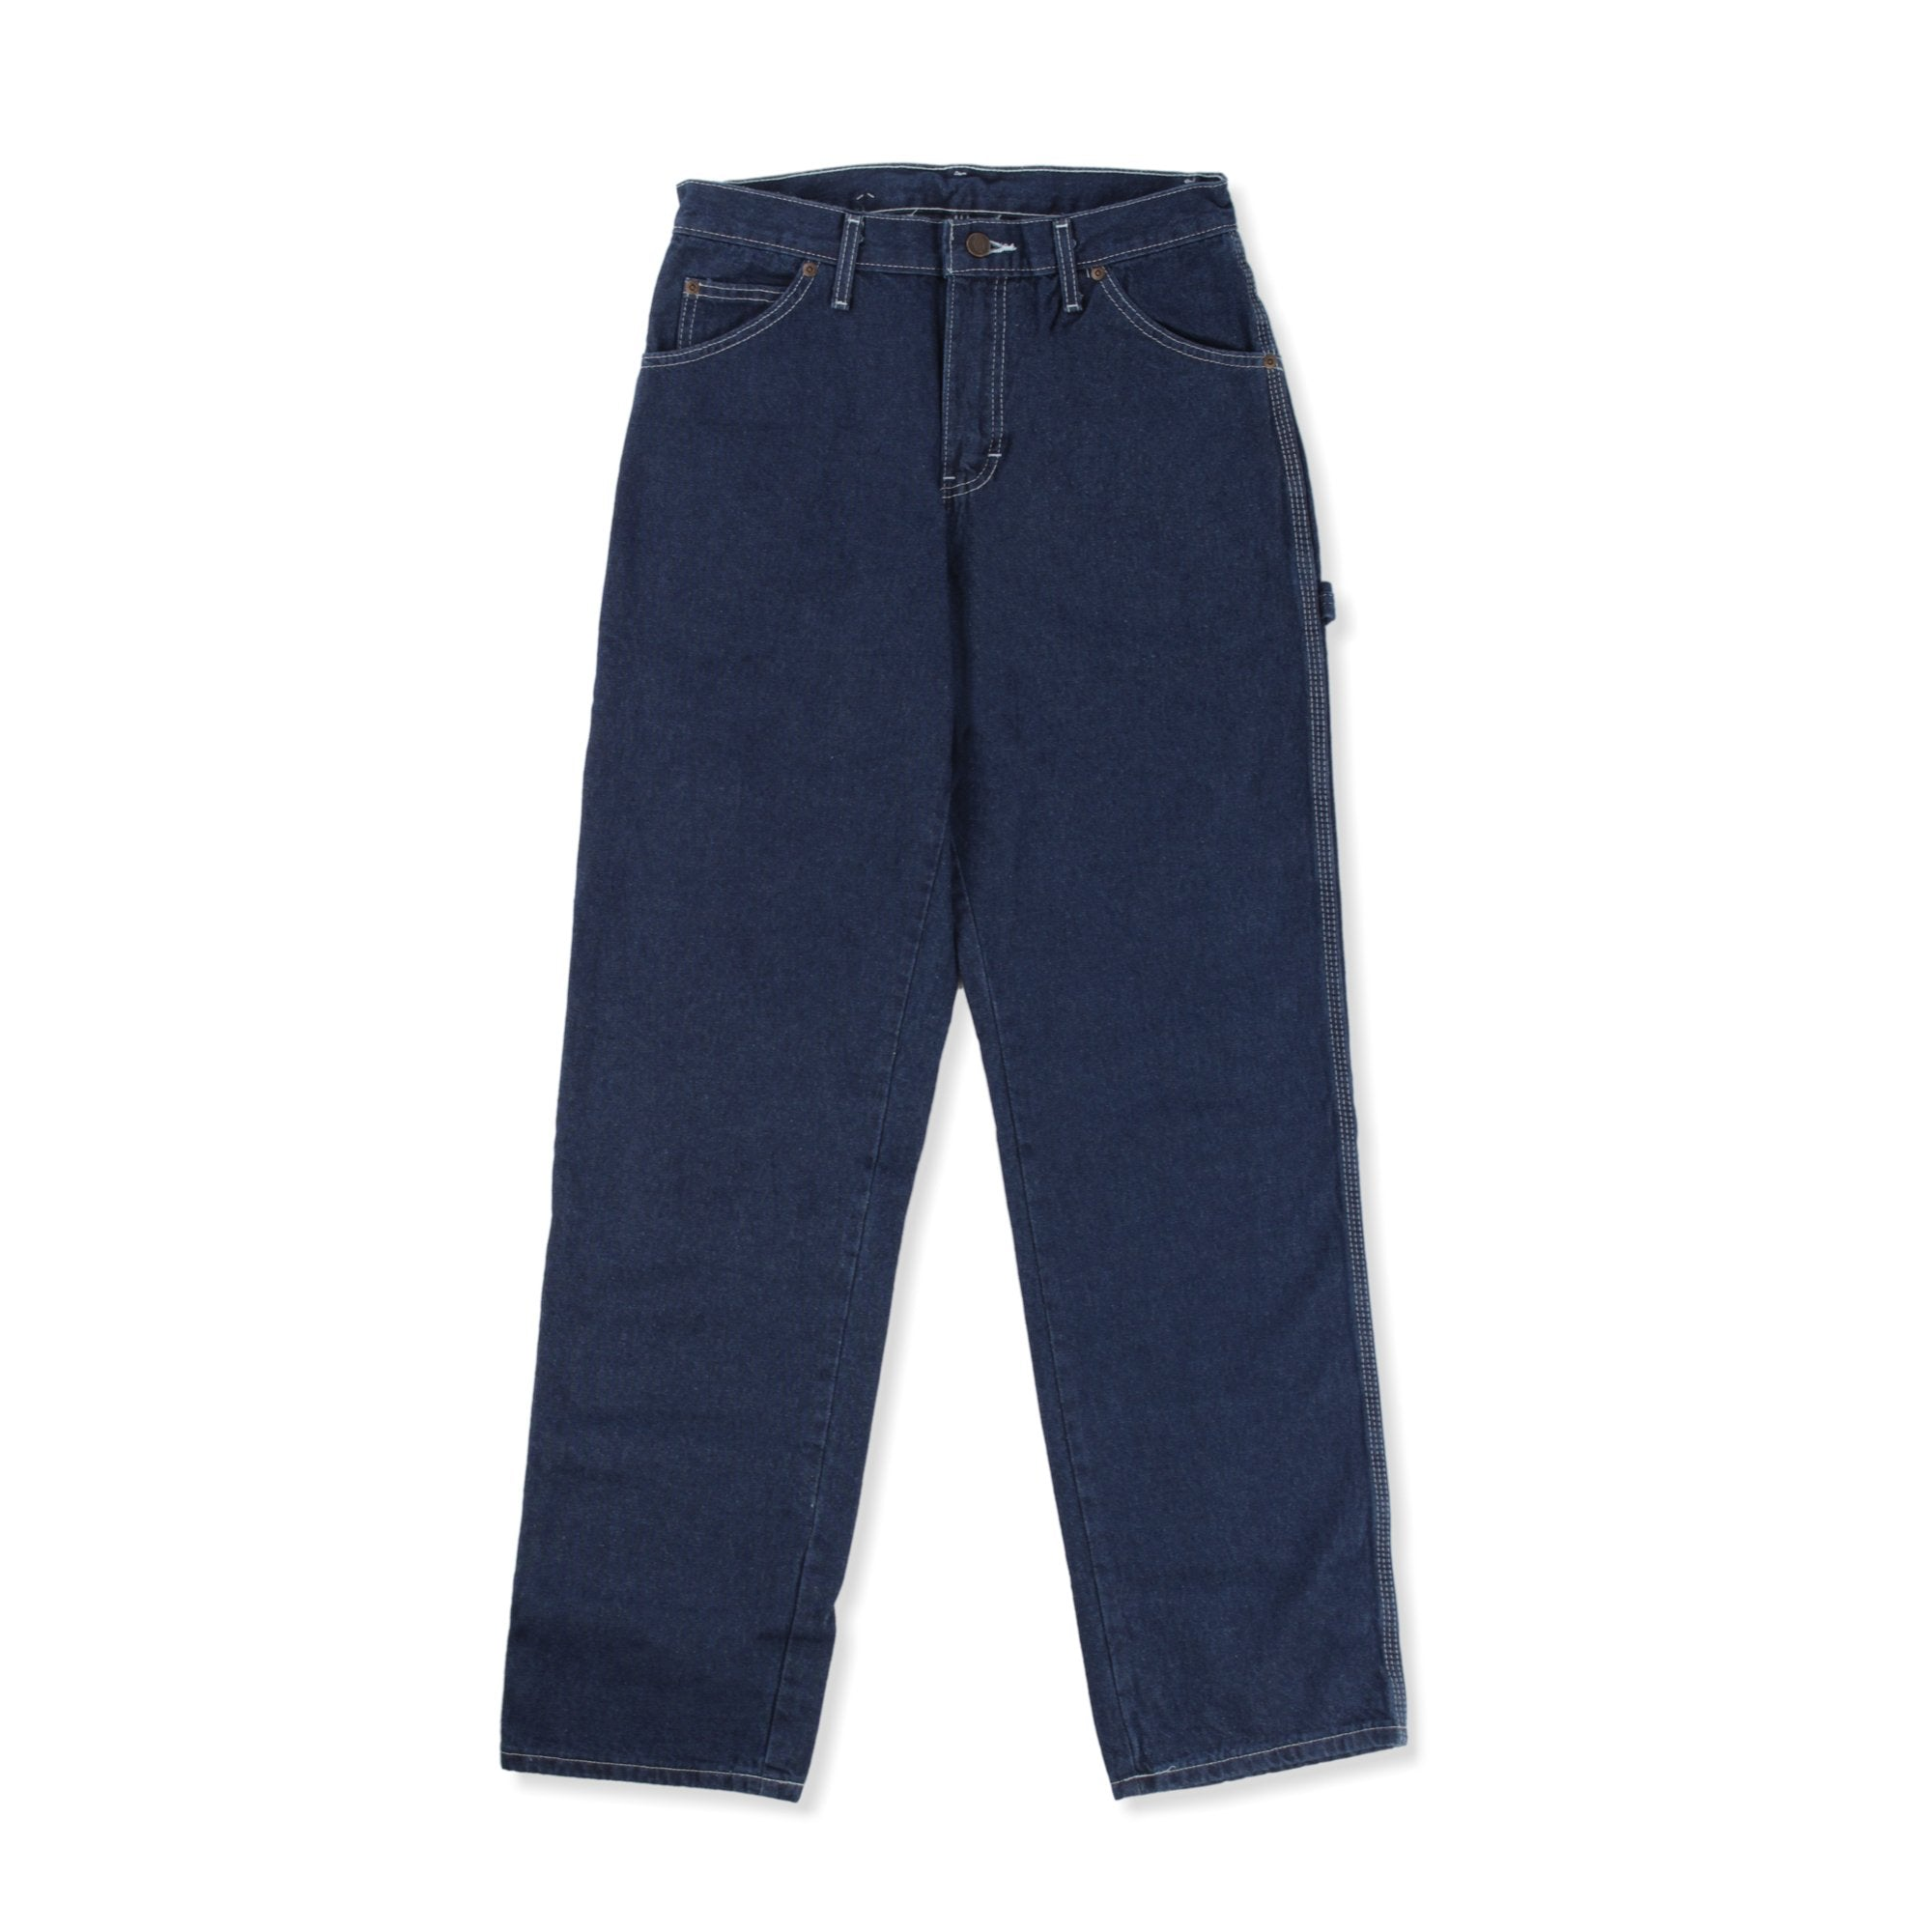 Dickies 1994 Pants Product Photo #1